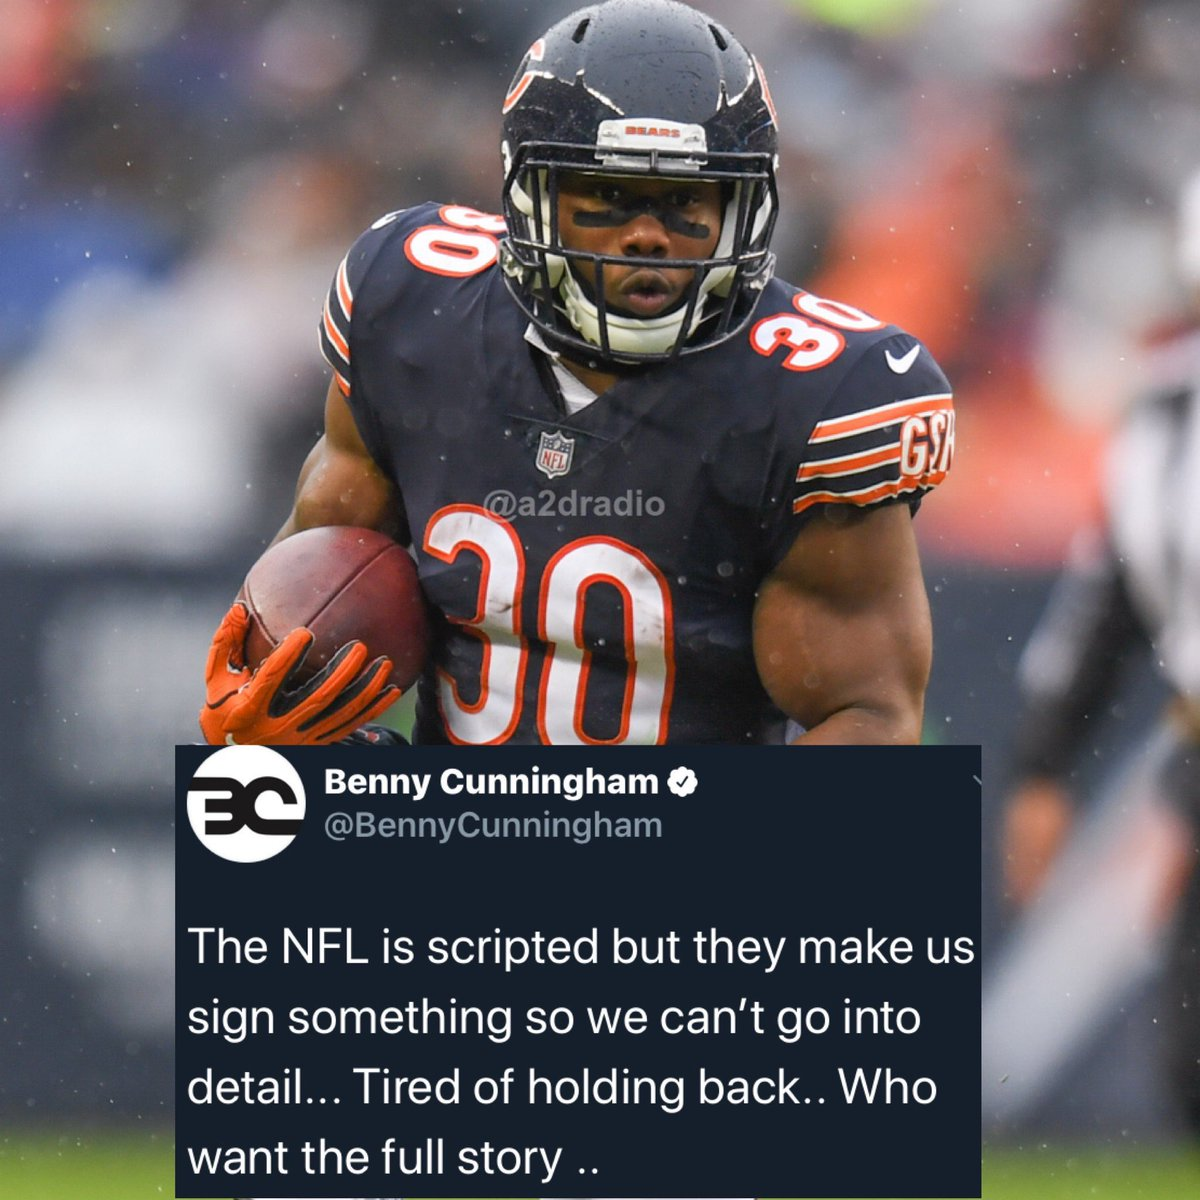 Former NFL player Benny Cunningham admits the NFL is scripted but cannot go into full detail because of an NDA he signed with the league. https://t.co/2NlS4jRlXN